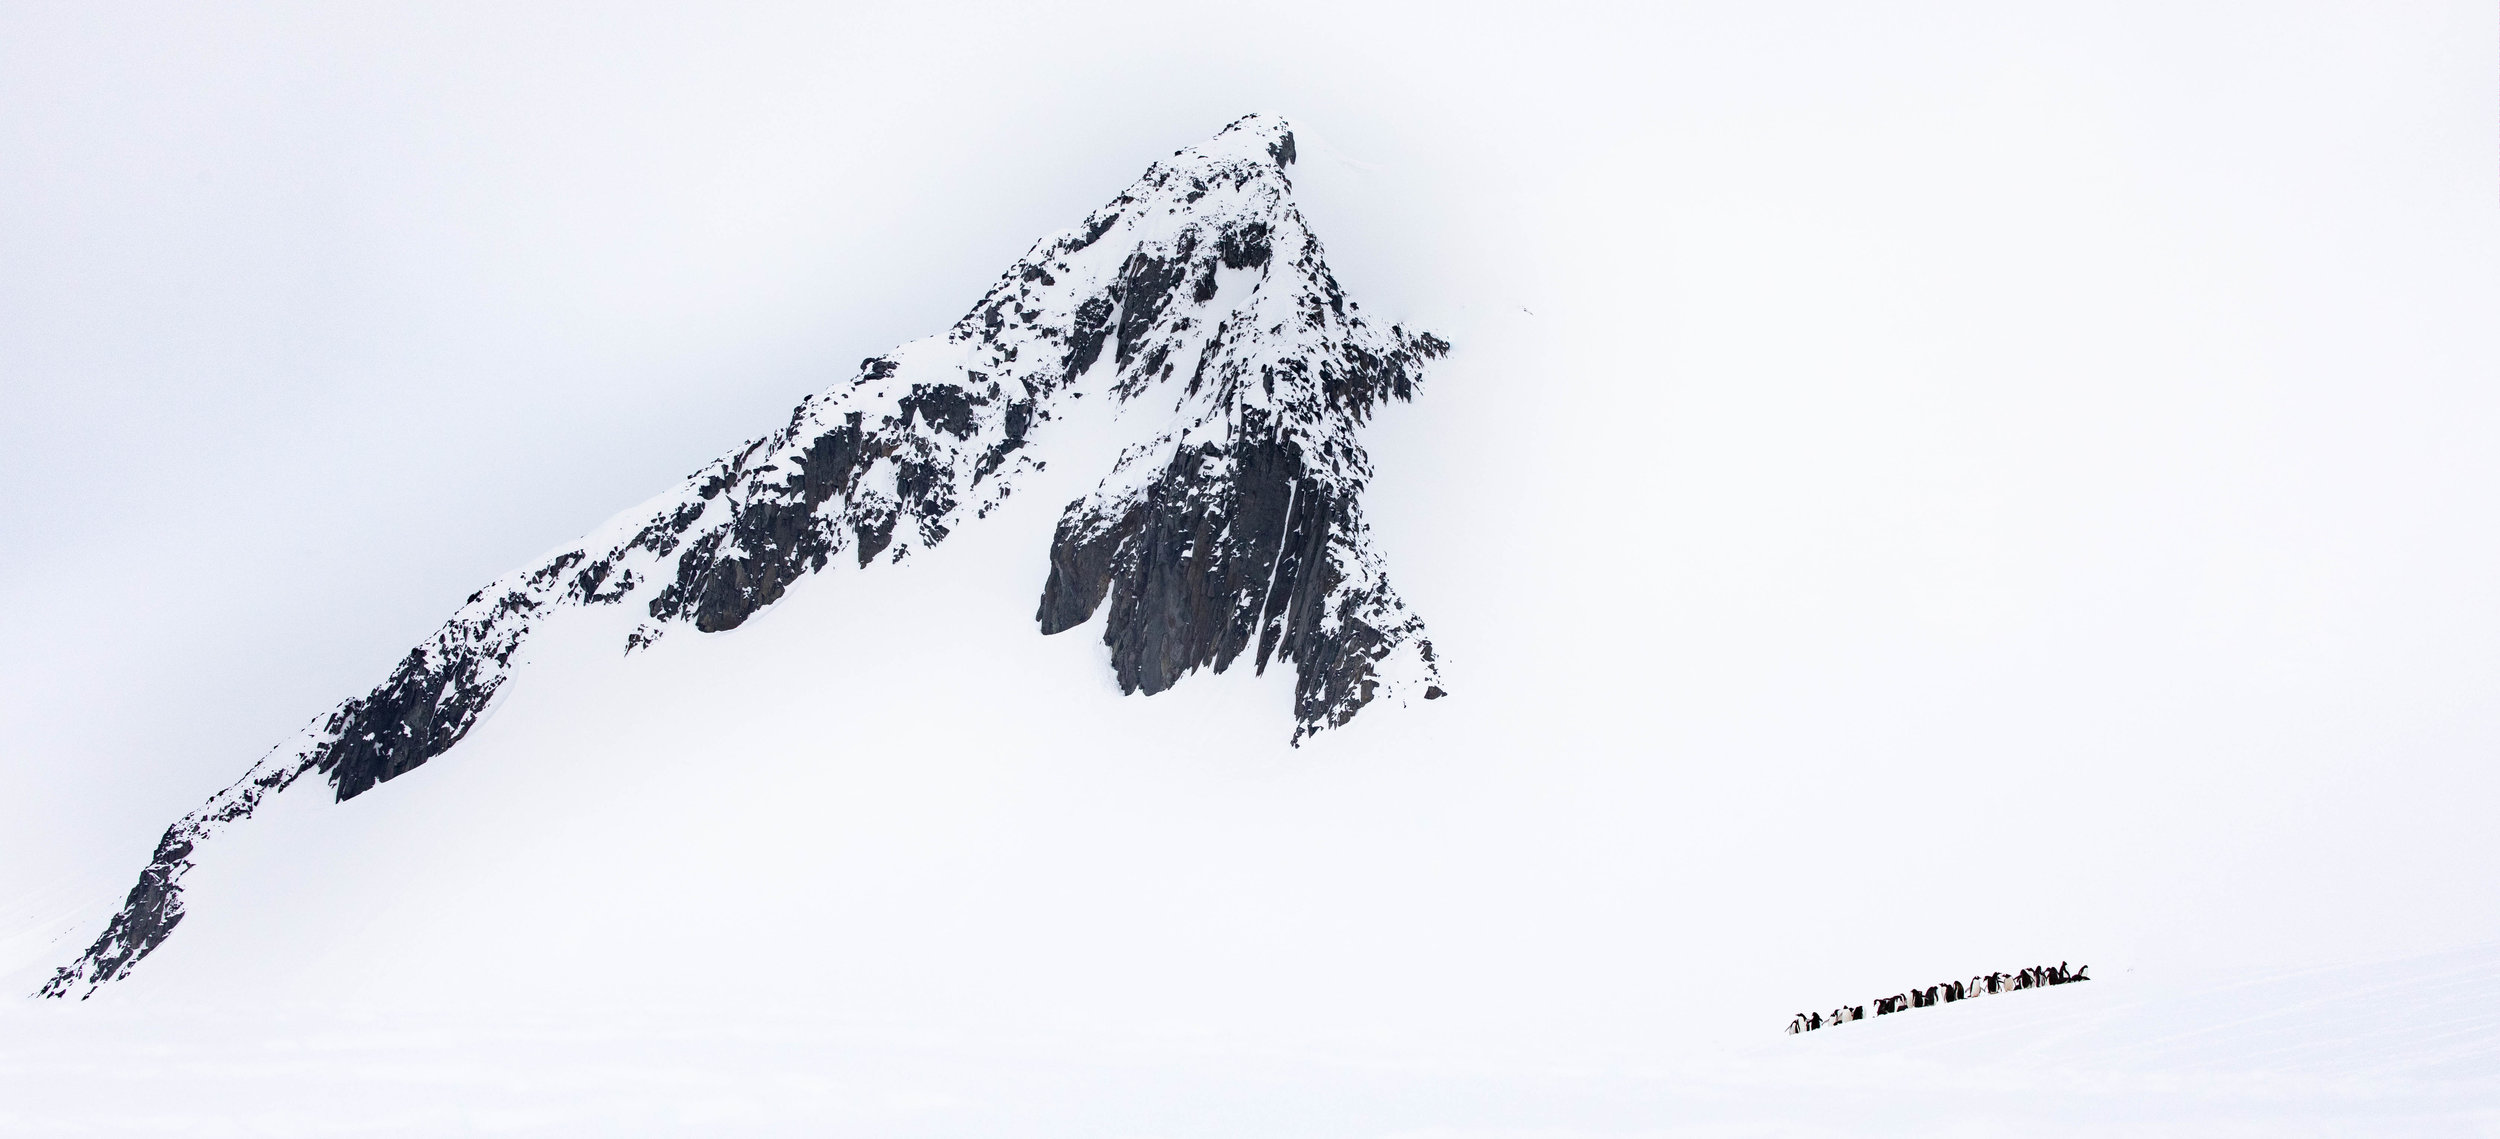 Mountain vs Adélie  Adélies are the smallest and most widespread species of penguin in Antarctica. I wanted to take an image showcasing the contrast between these small birds and their vast environment. In a world that is getting smaller for wildlife by the second, I find it comforting to remind myself that we all play a small but critical role how ecosystems much bigger than ourselves function. We can all make a difference.